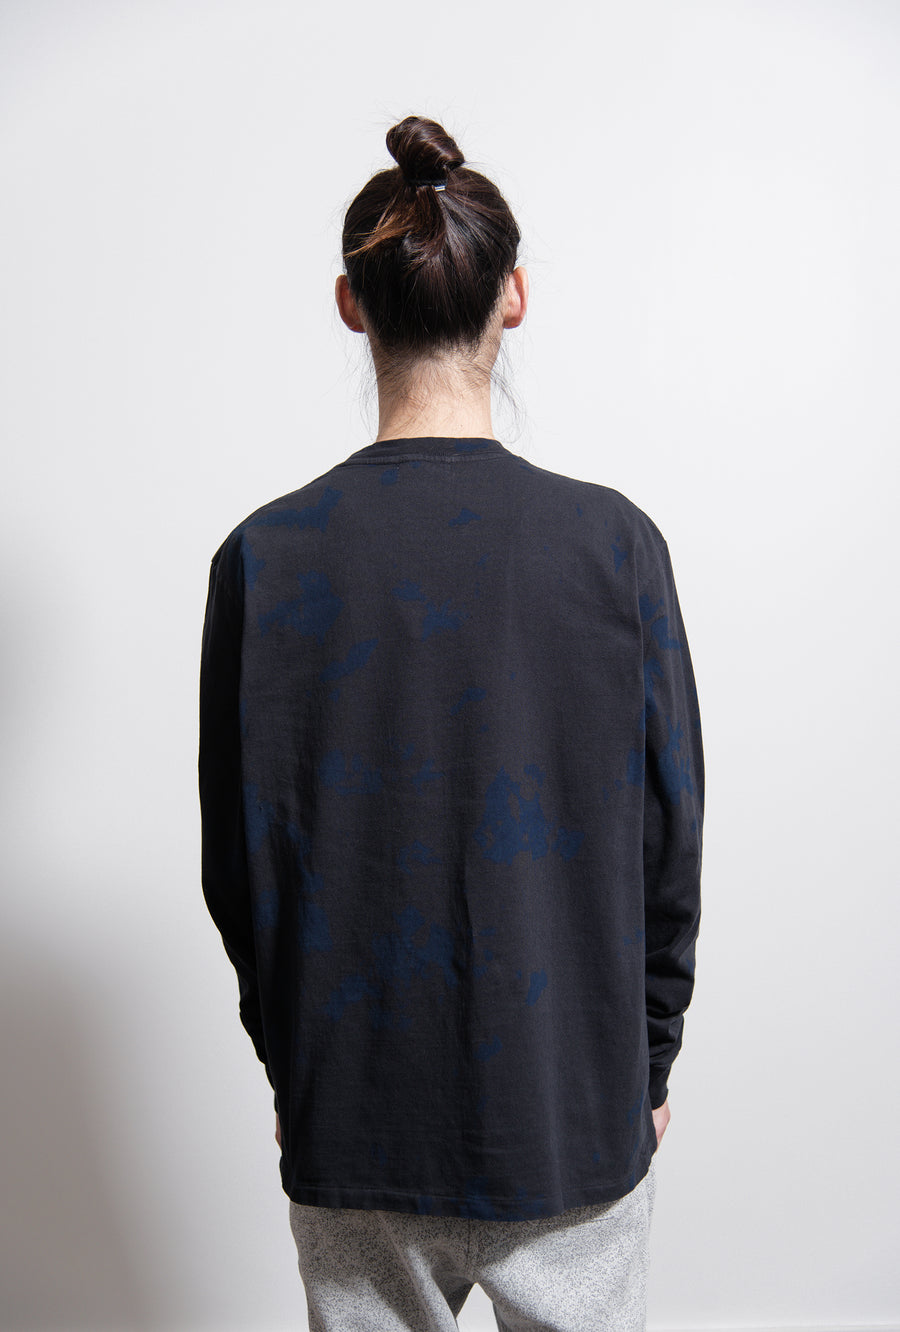 Double Dye University Tee Indigo/Black